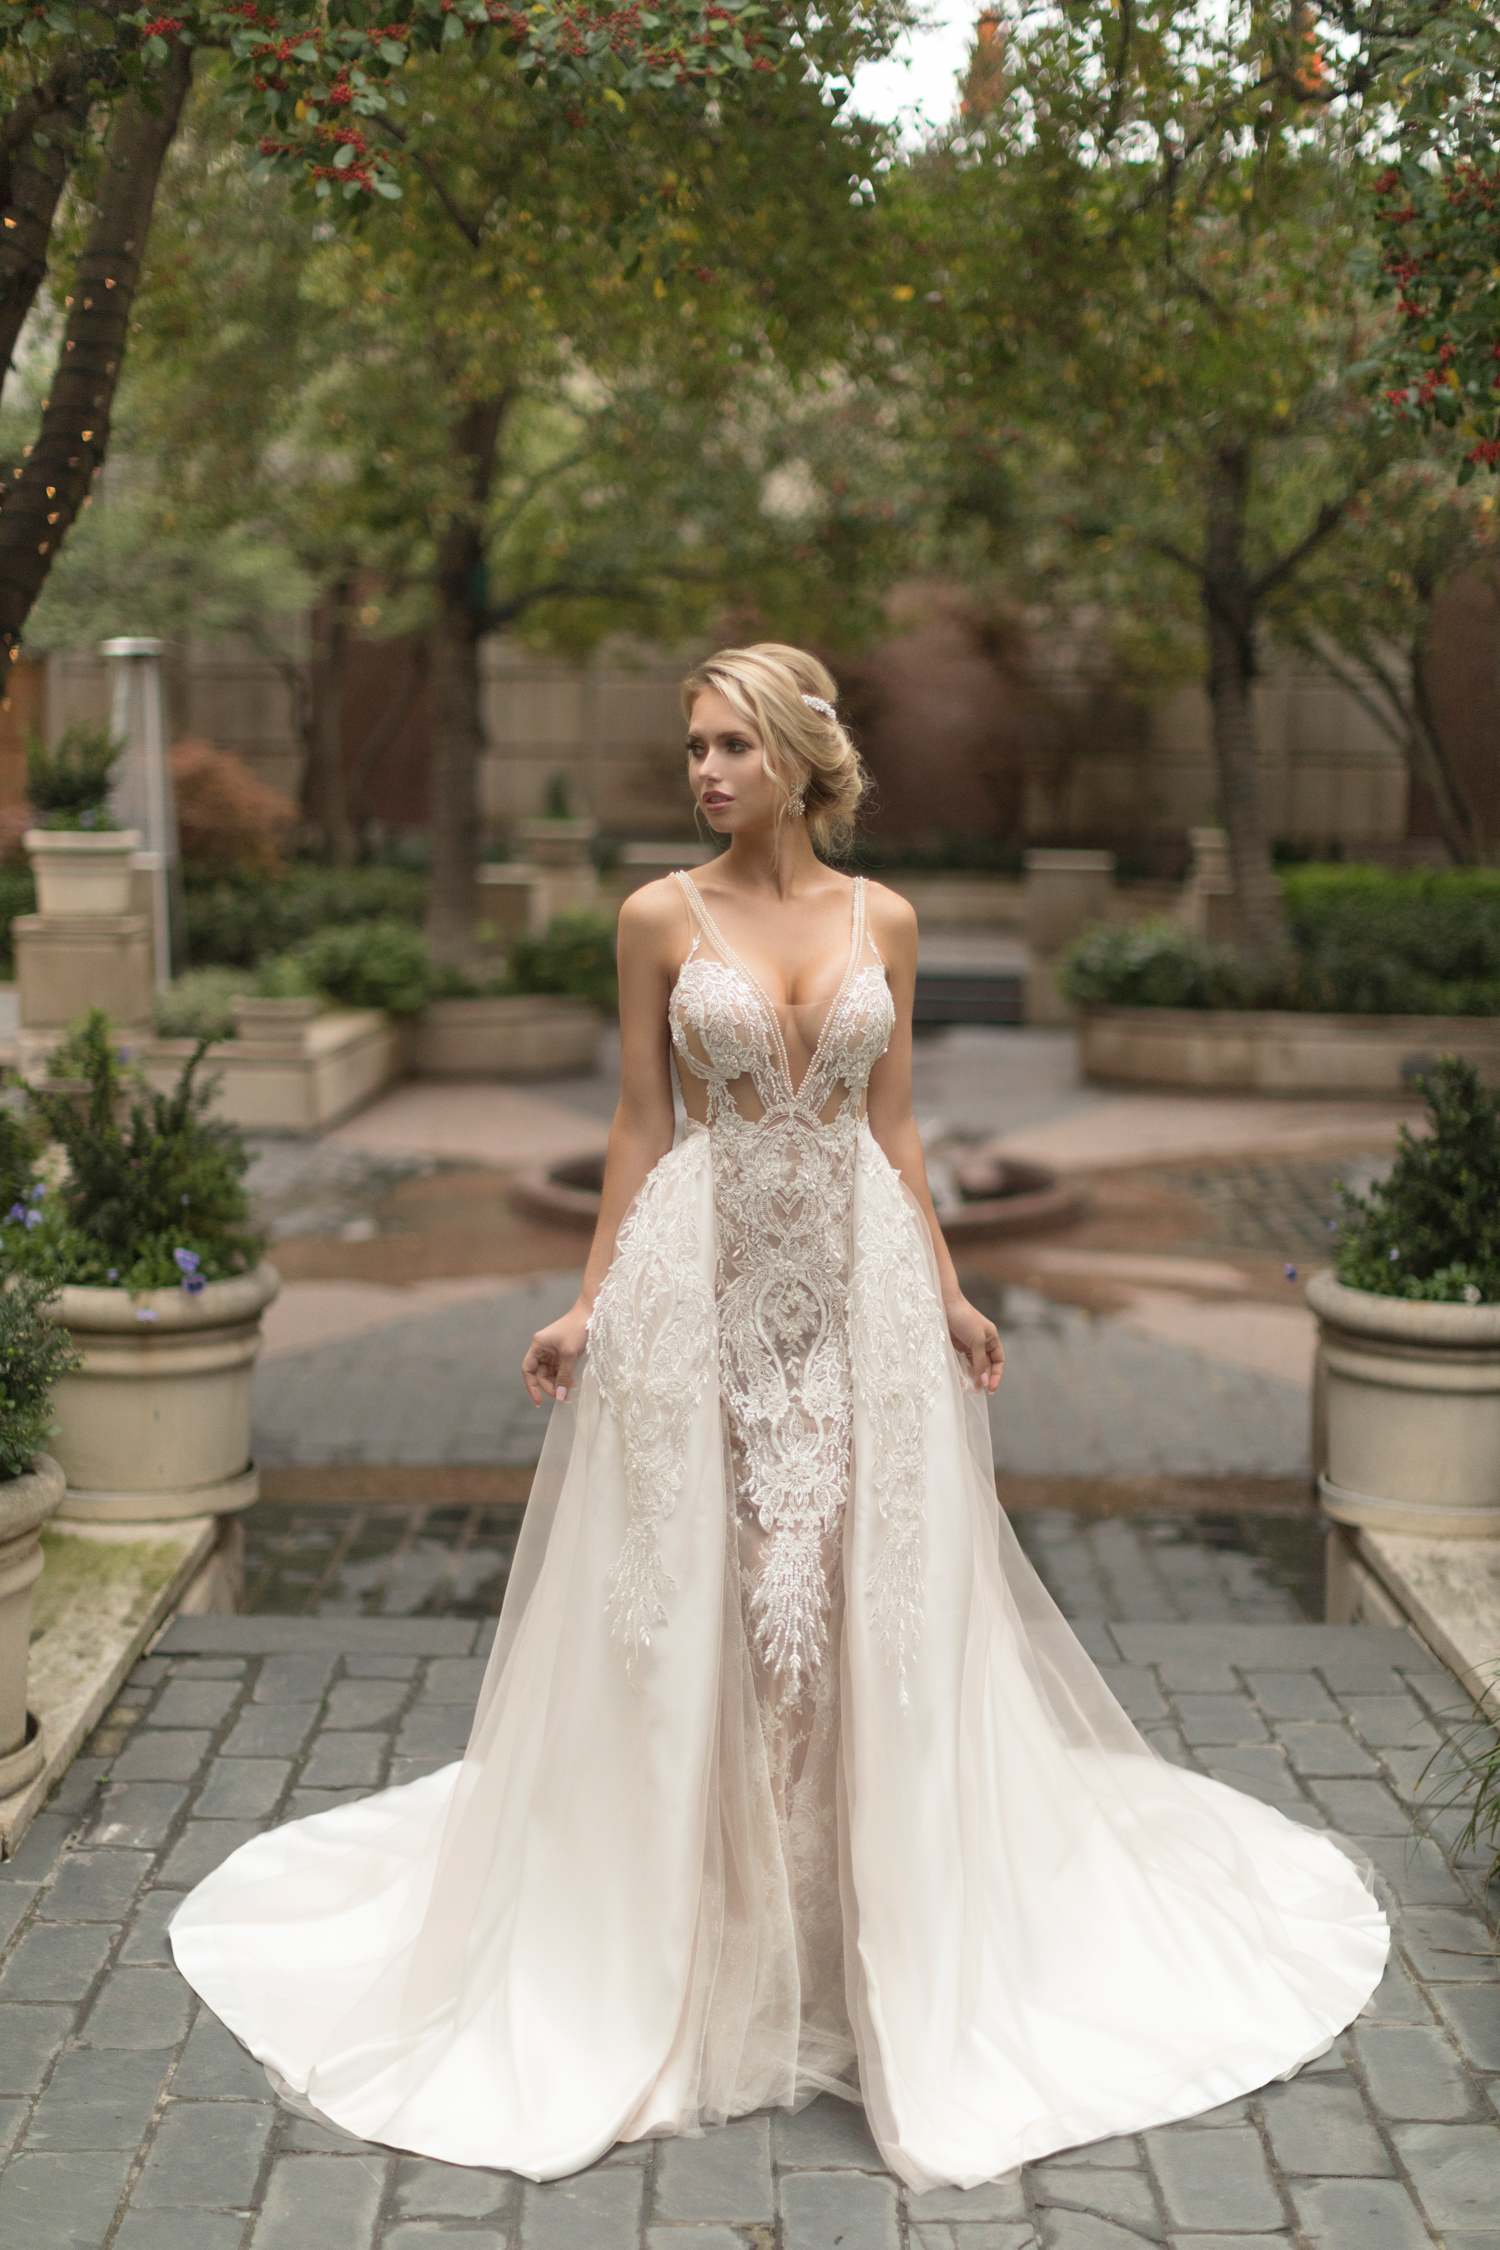 bbd3143161 Naama   Anat Haute Couture Release New Collection  Dancing Up the ...